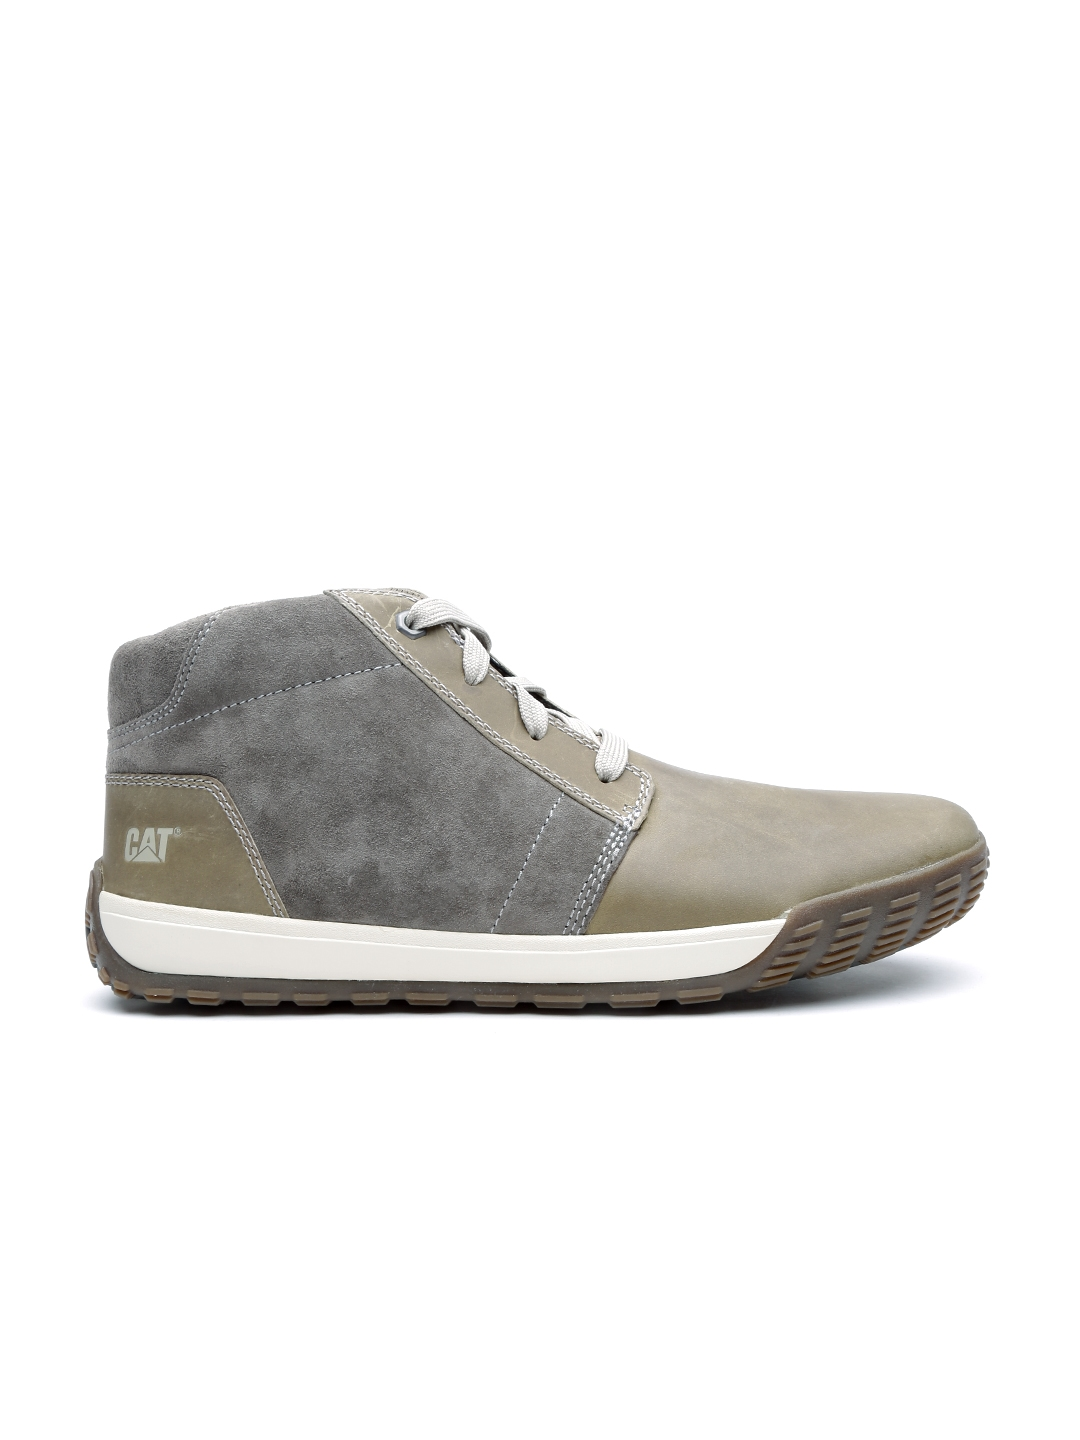 110963e9132 CAT Men Olive Green & Grey Pernell Wolverine Leather Casual Shoes